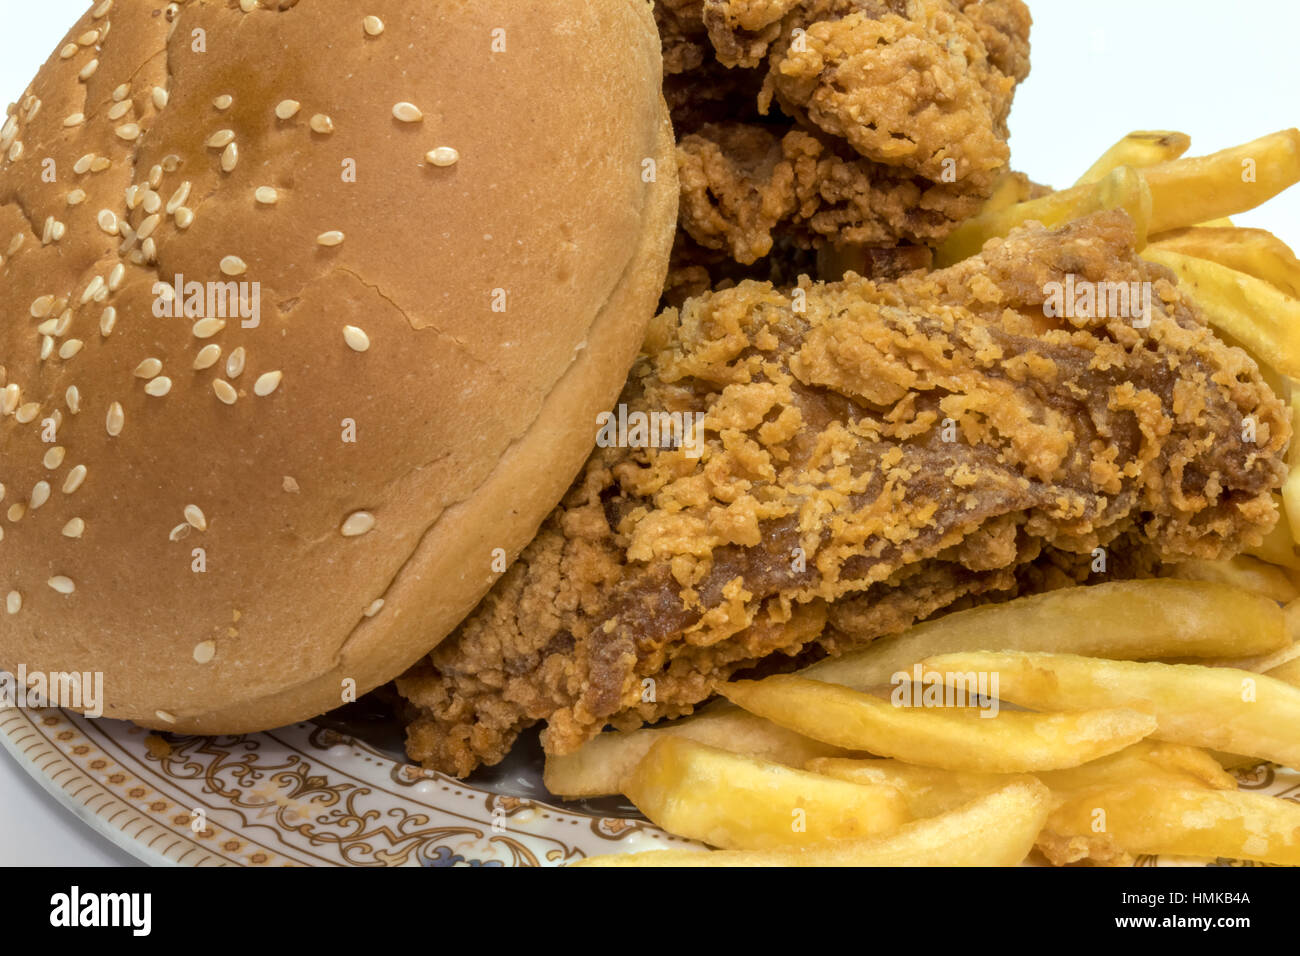 Tasty Fried potatoes with deep fried crunchy spicy chicken delicious - Stock Image